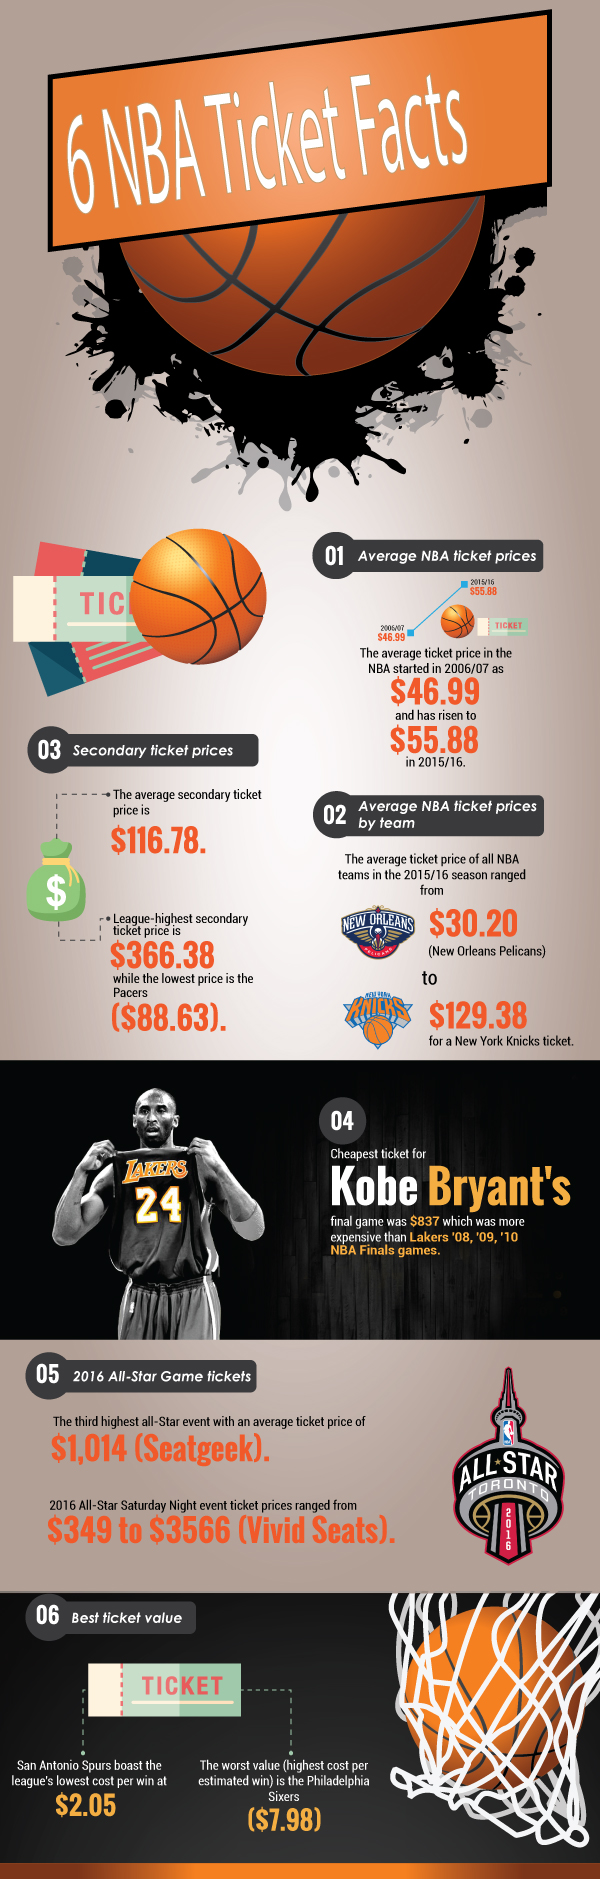 NBA Ticket Facts